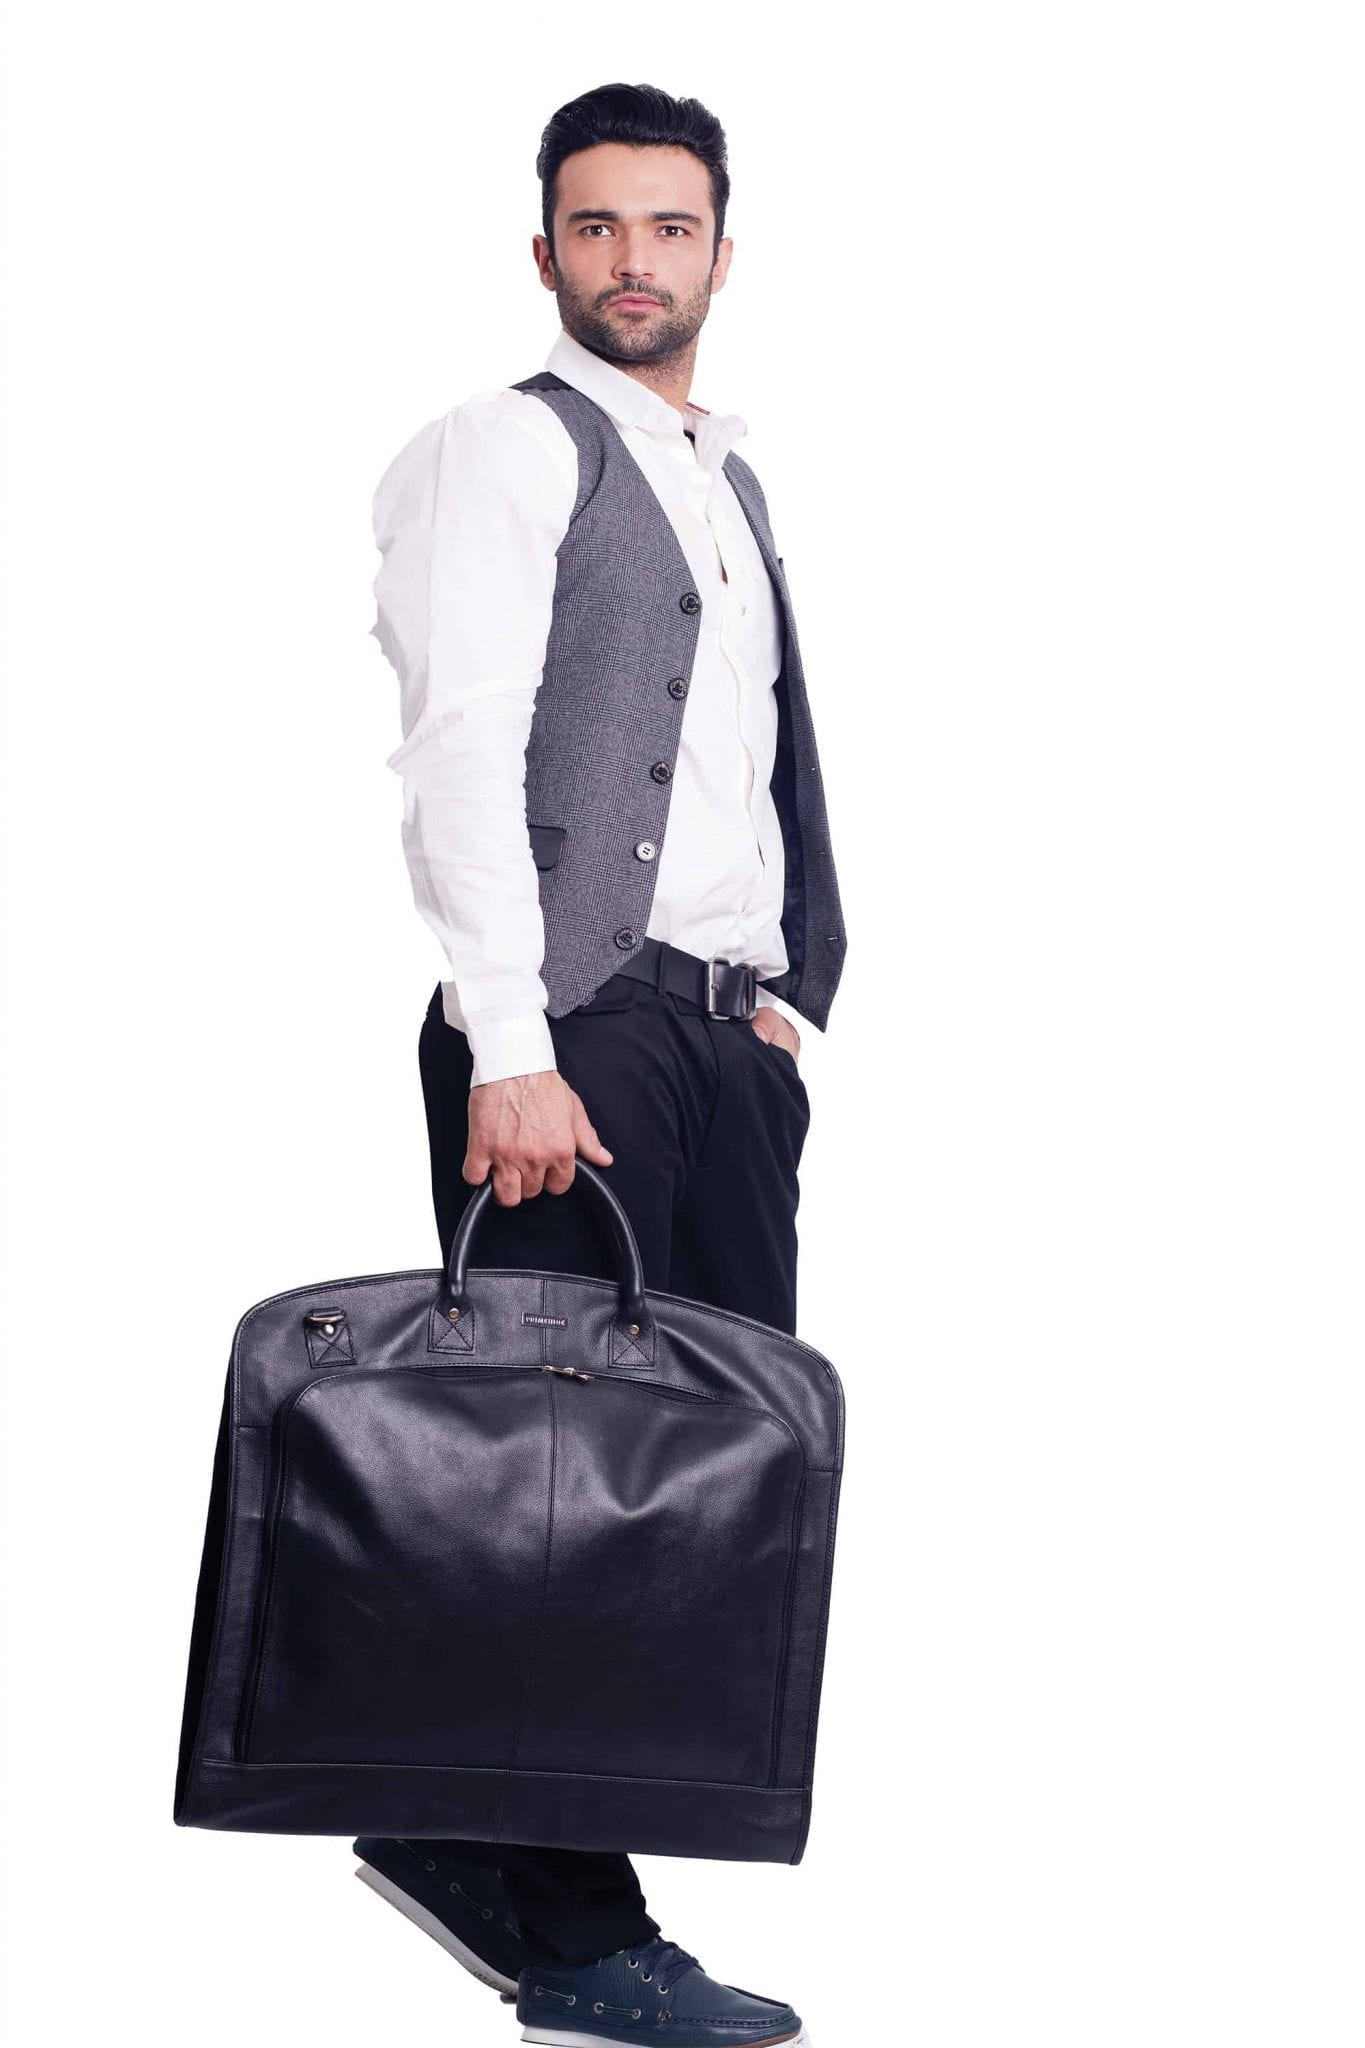 Men's Leather Suit Garment Carriers